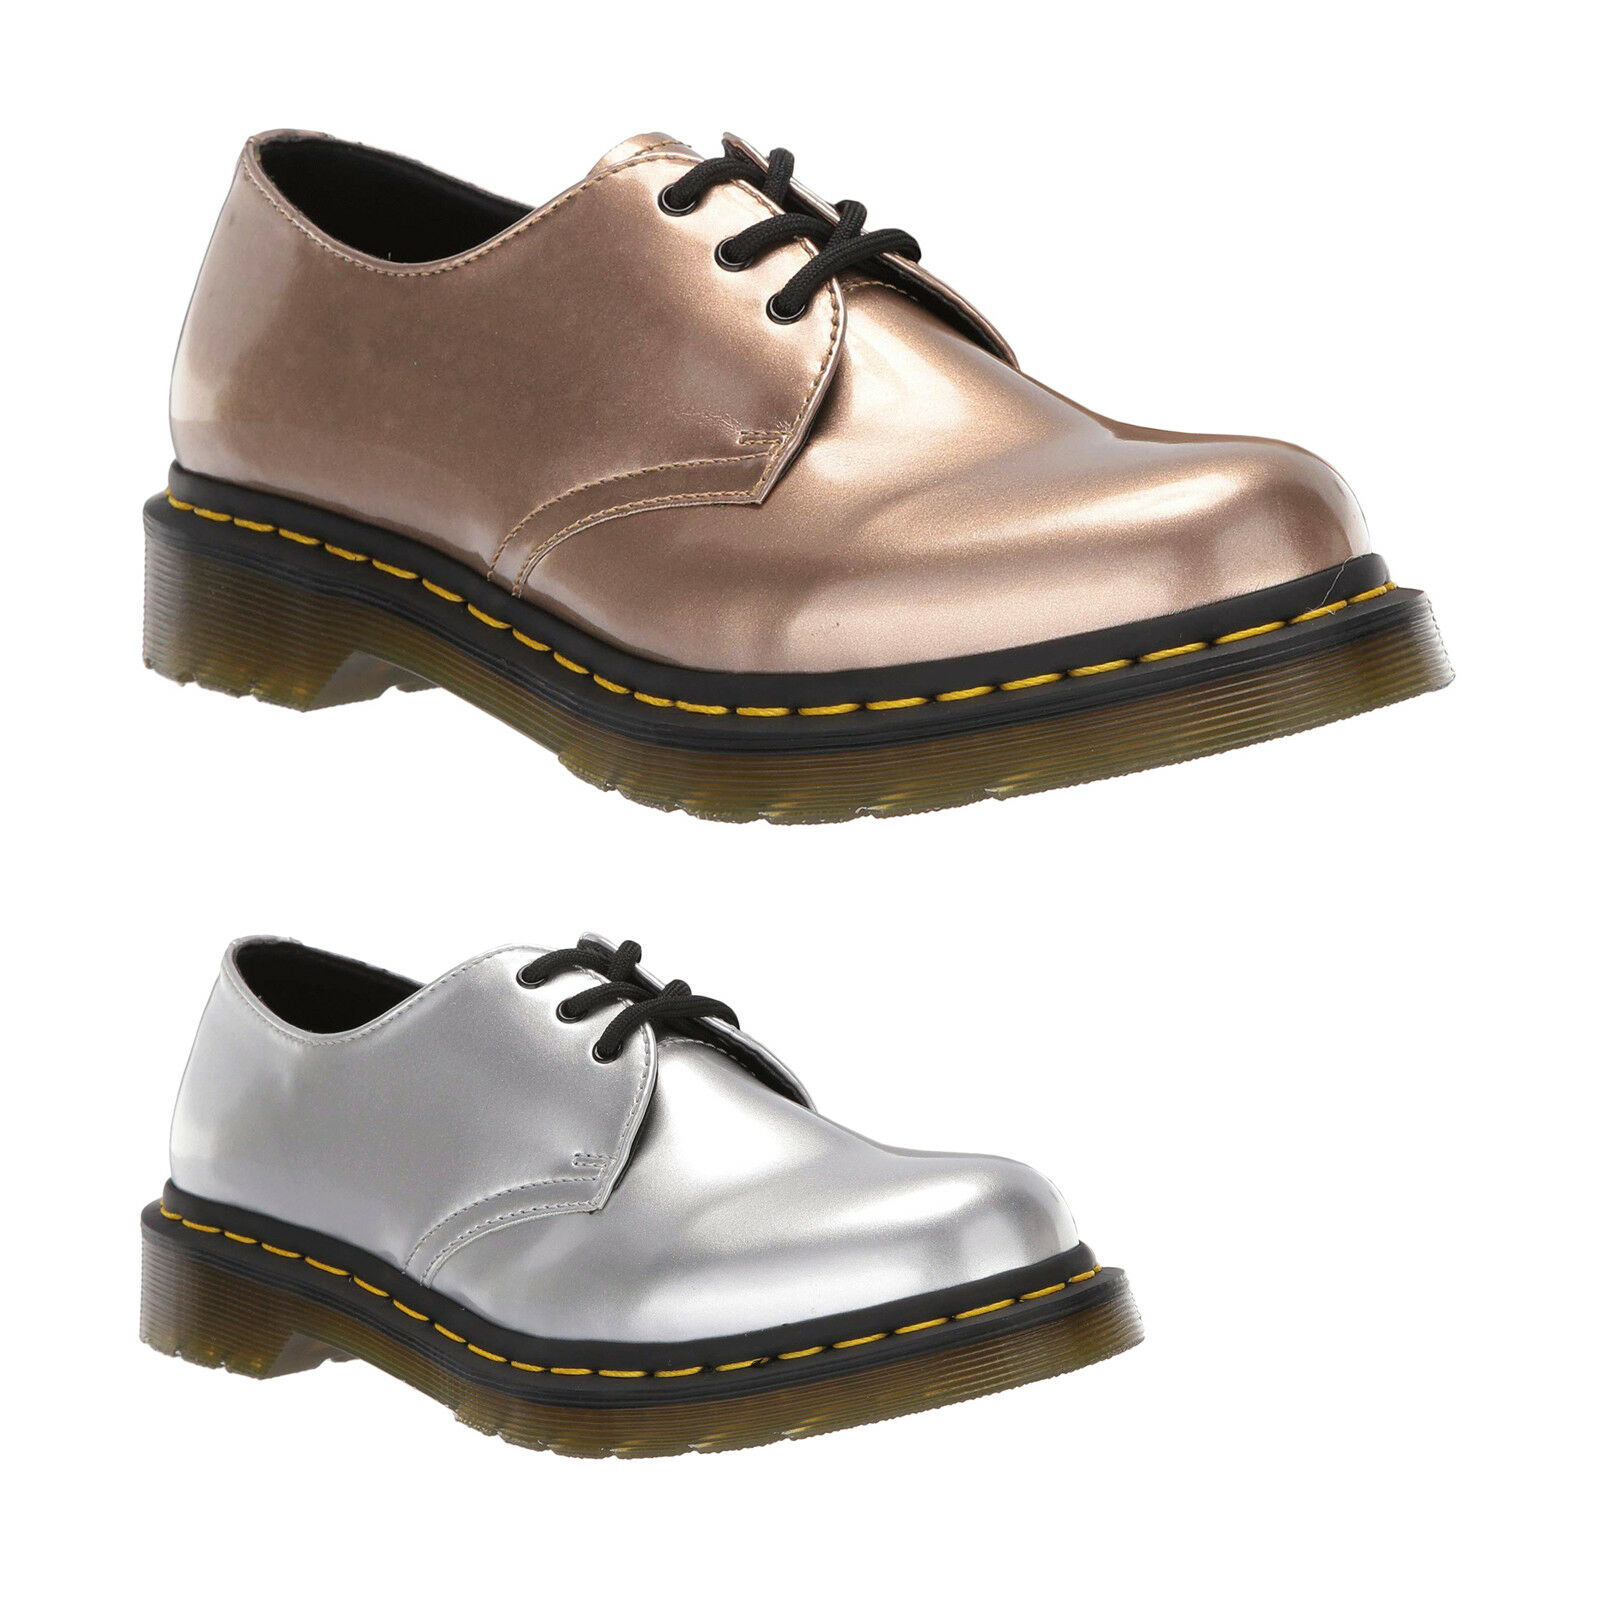 Dr. Martens 1461 Vegan Vegan Vegan Synthetic Casual Lace-Up Low-top Chaussures Femmes 0674f3